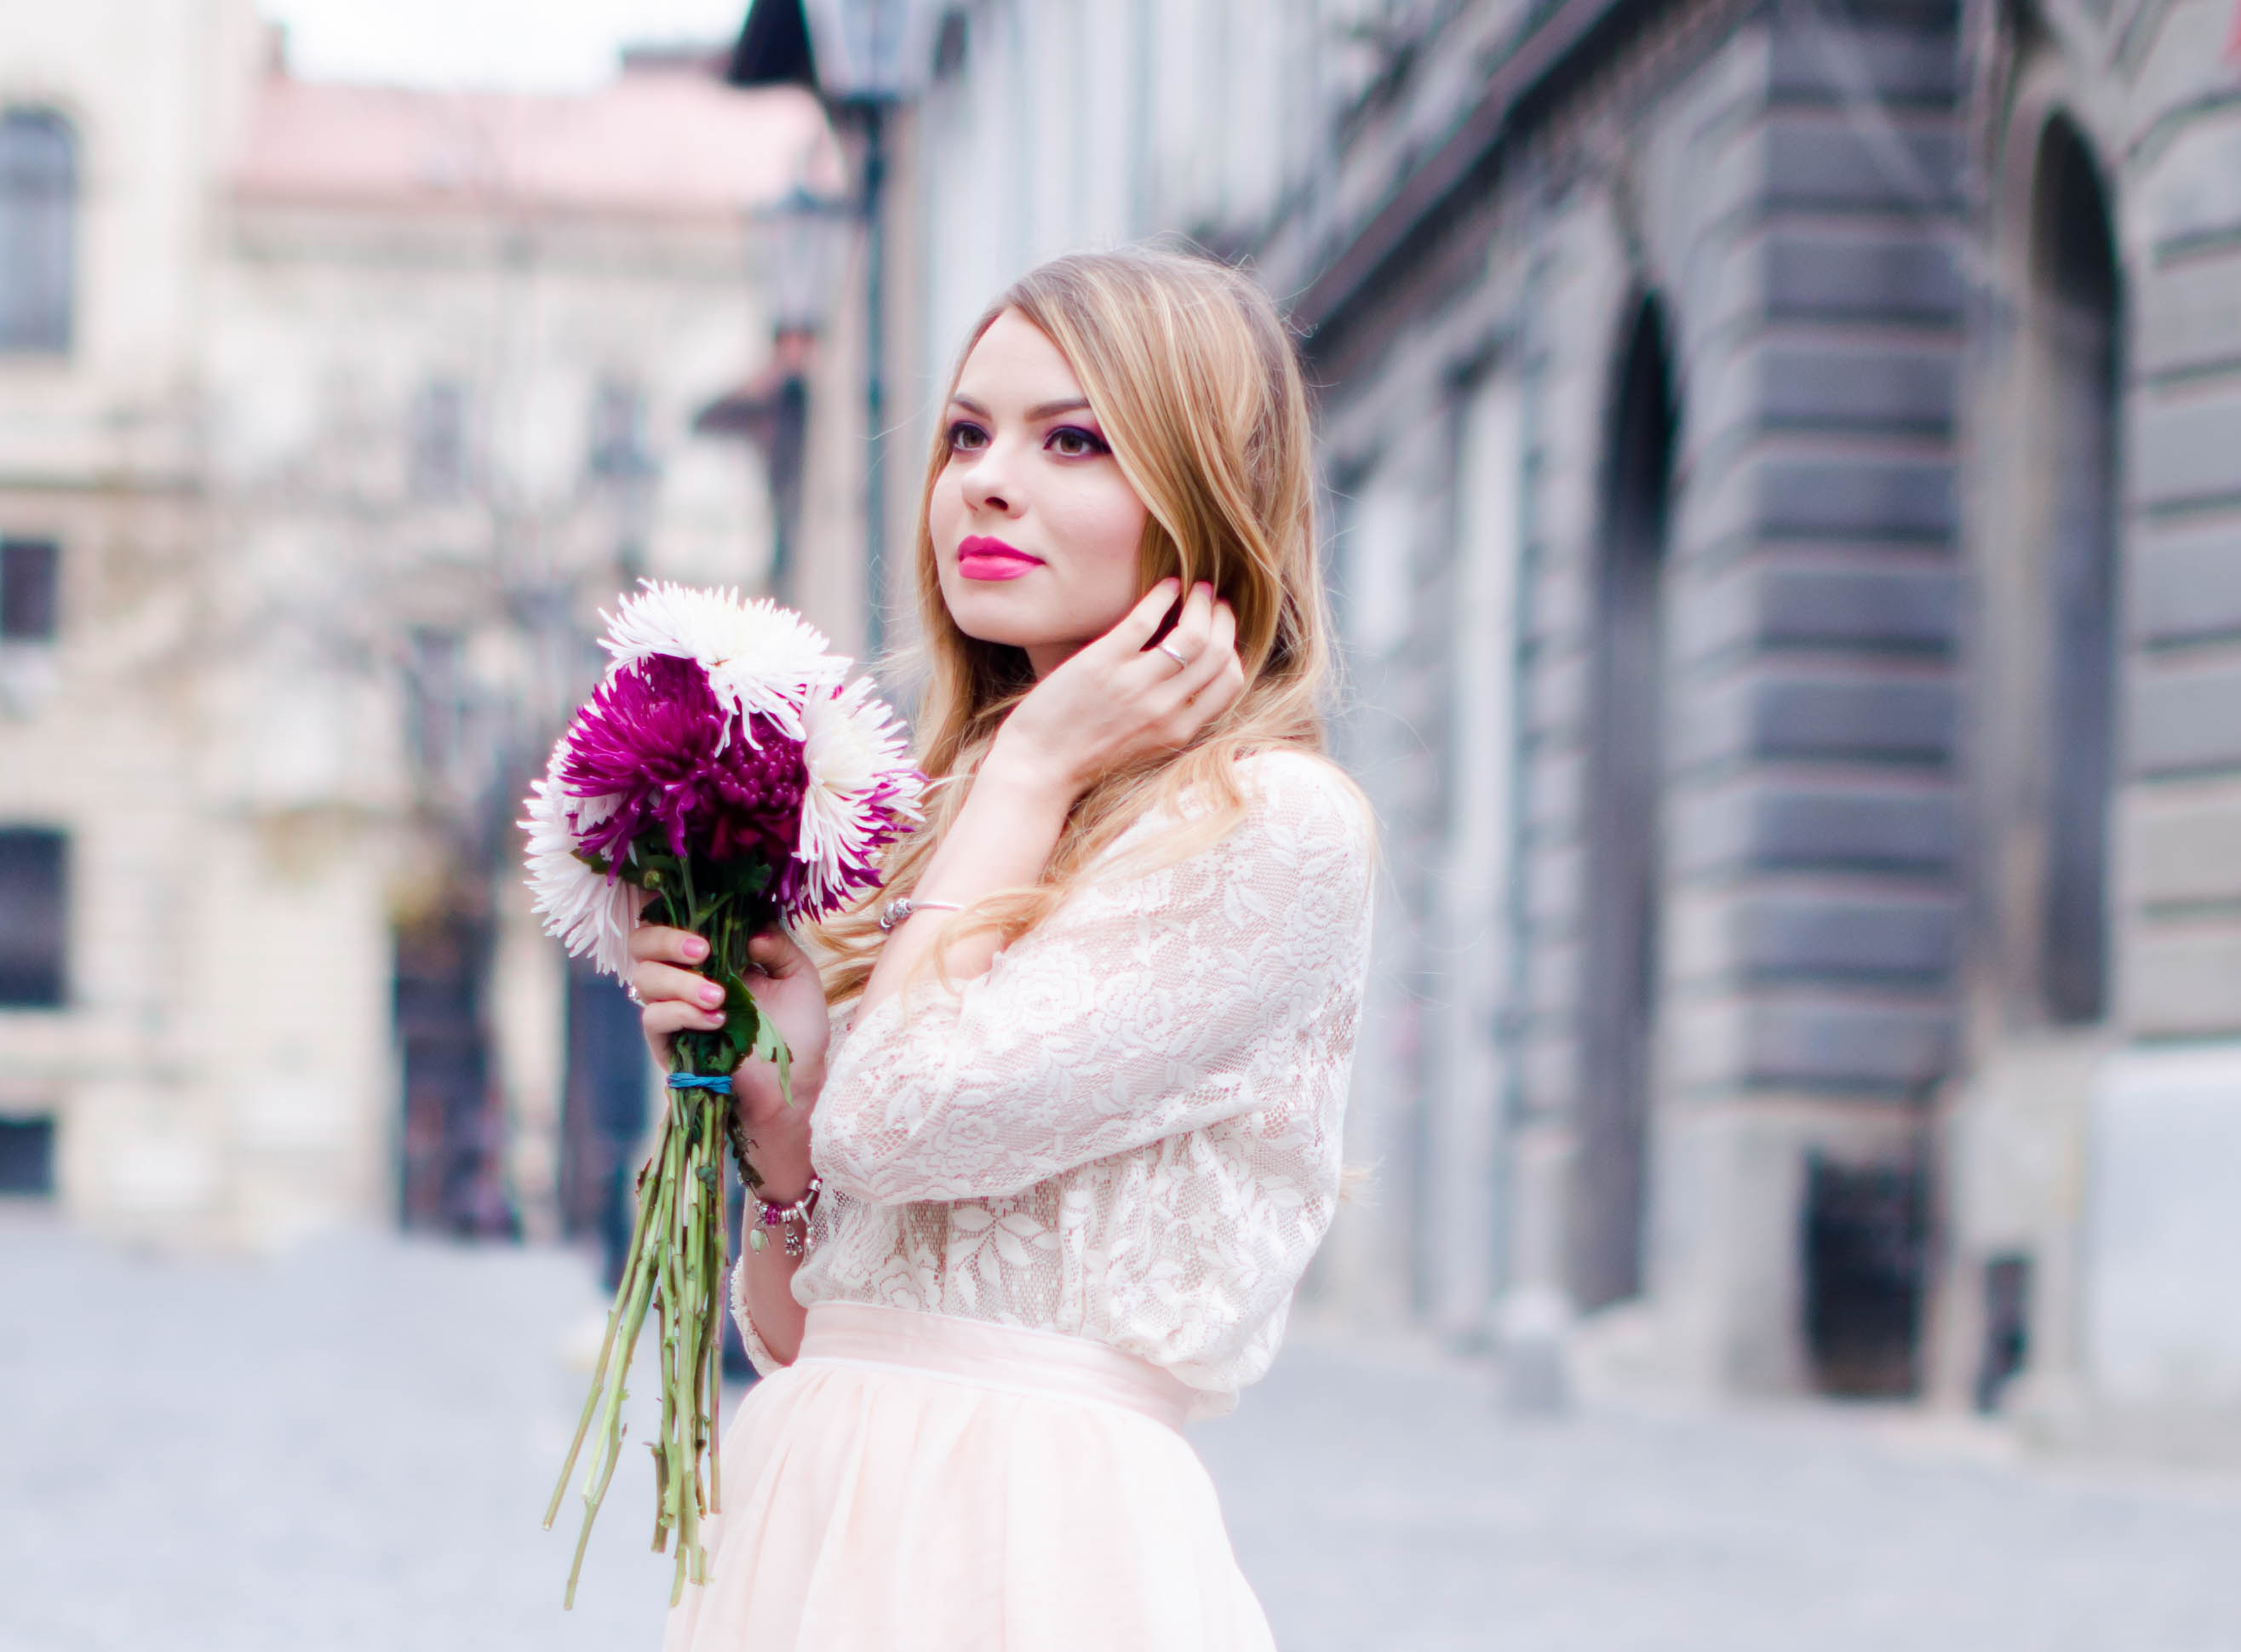 pastel-pink-tulle-skirt-lace-blouse-pink-flowers-feminine-outfit-embellished-pink-heels (4)